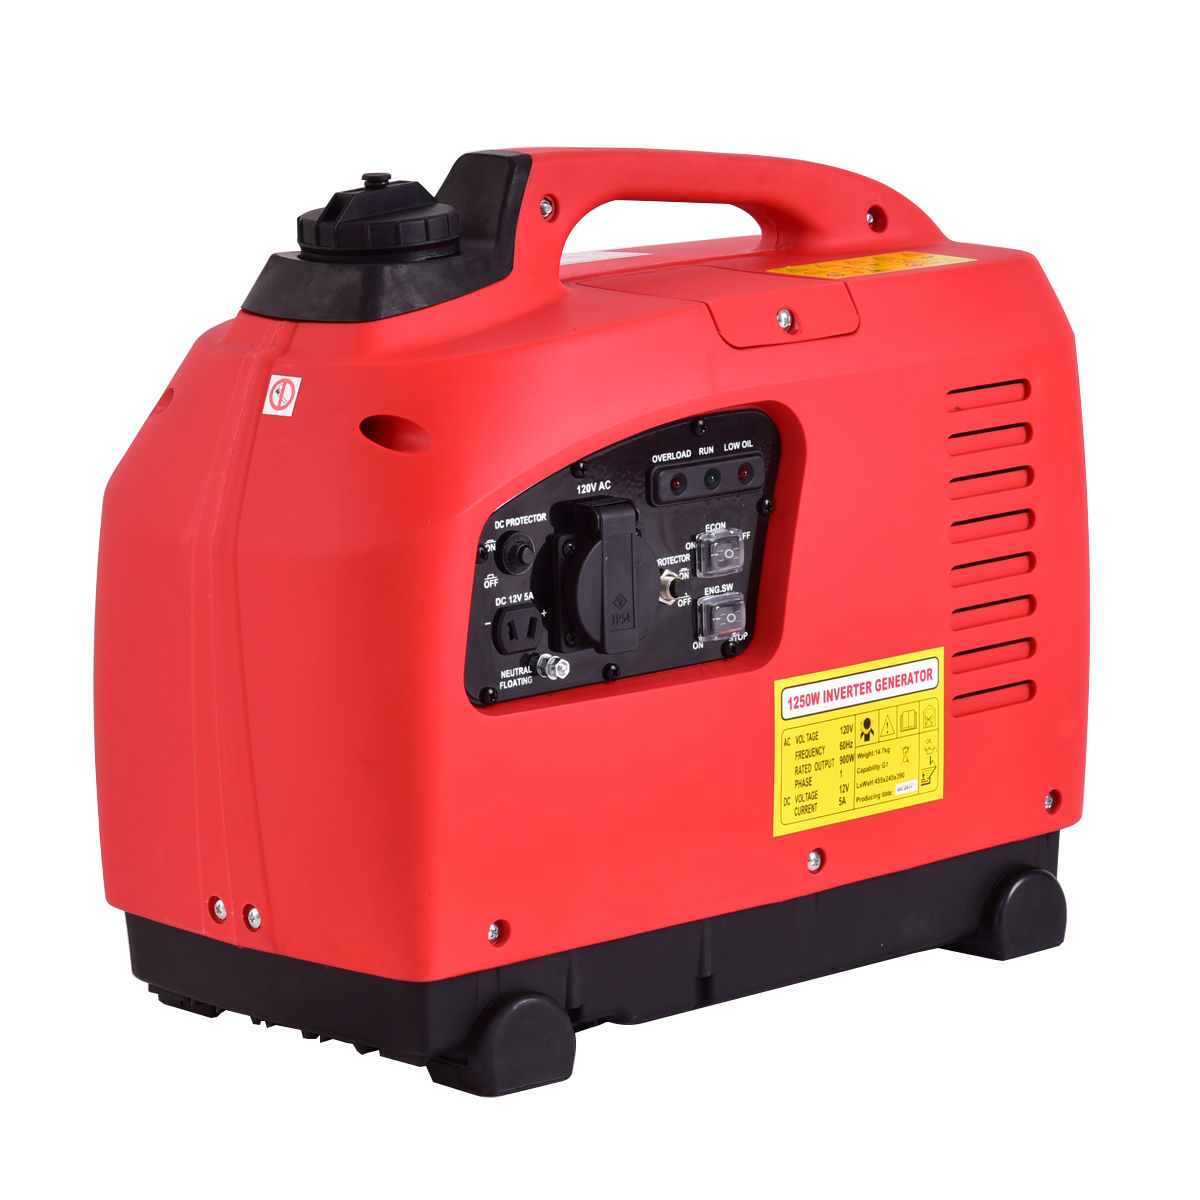 Costway Portable 1250W Digital Inverter Generator 4 Stroke 53cc Single Cylinder Red